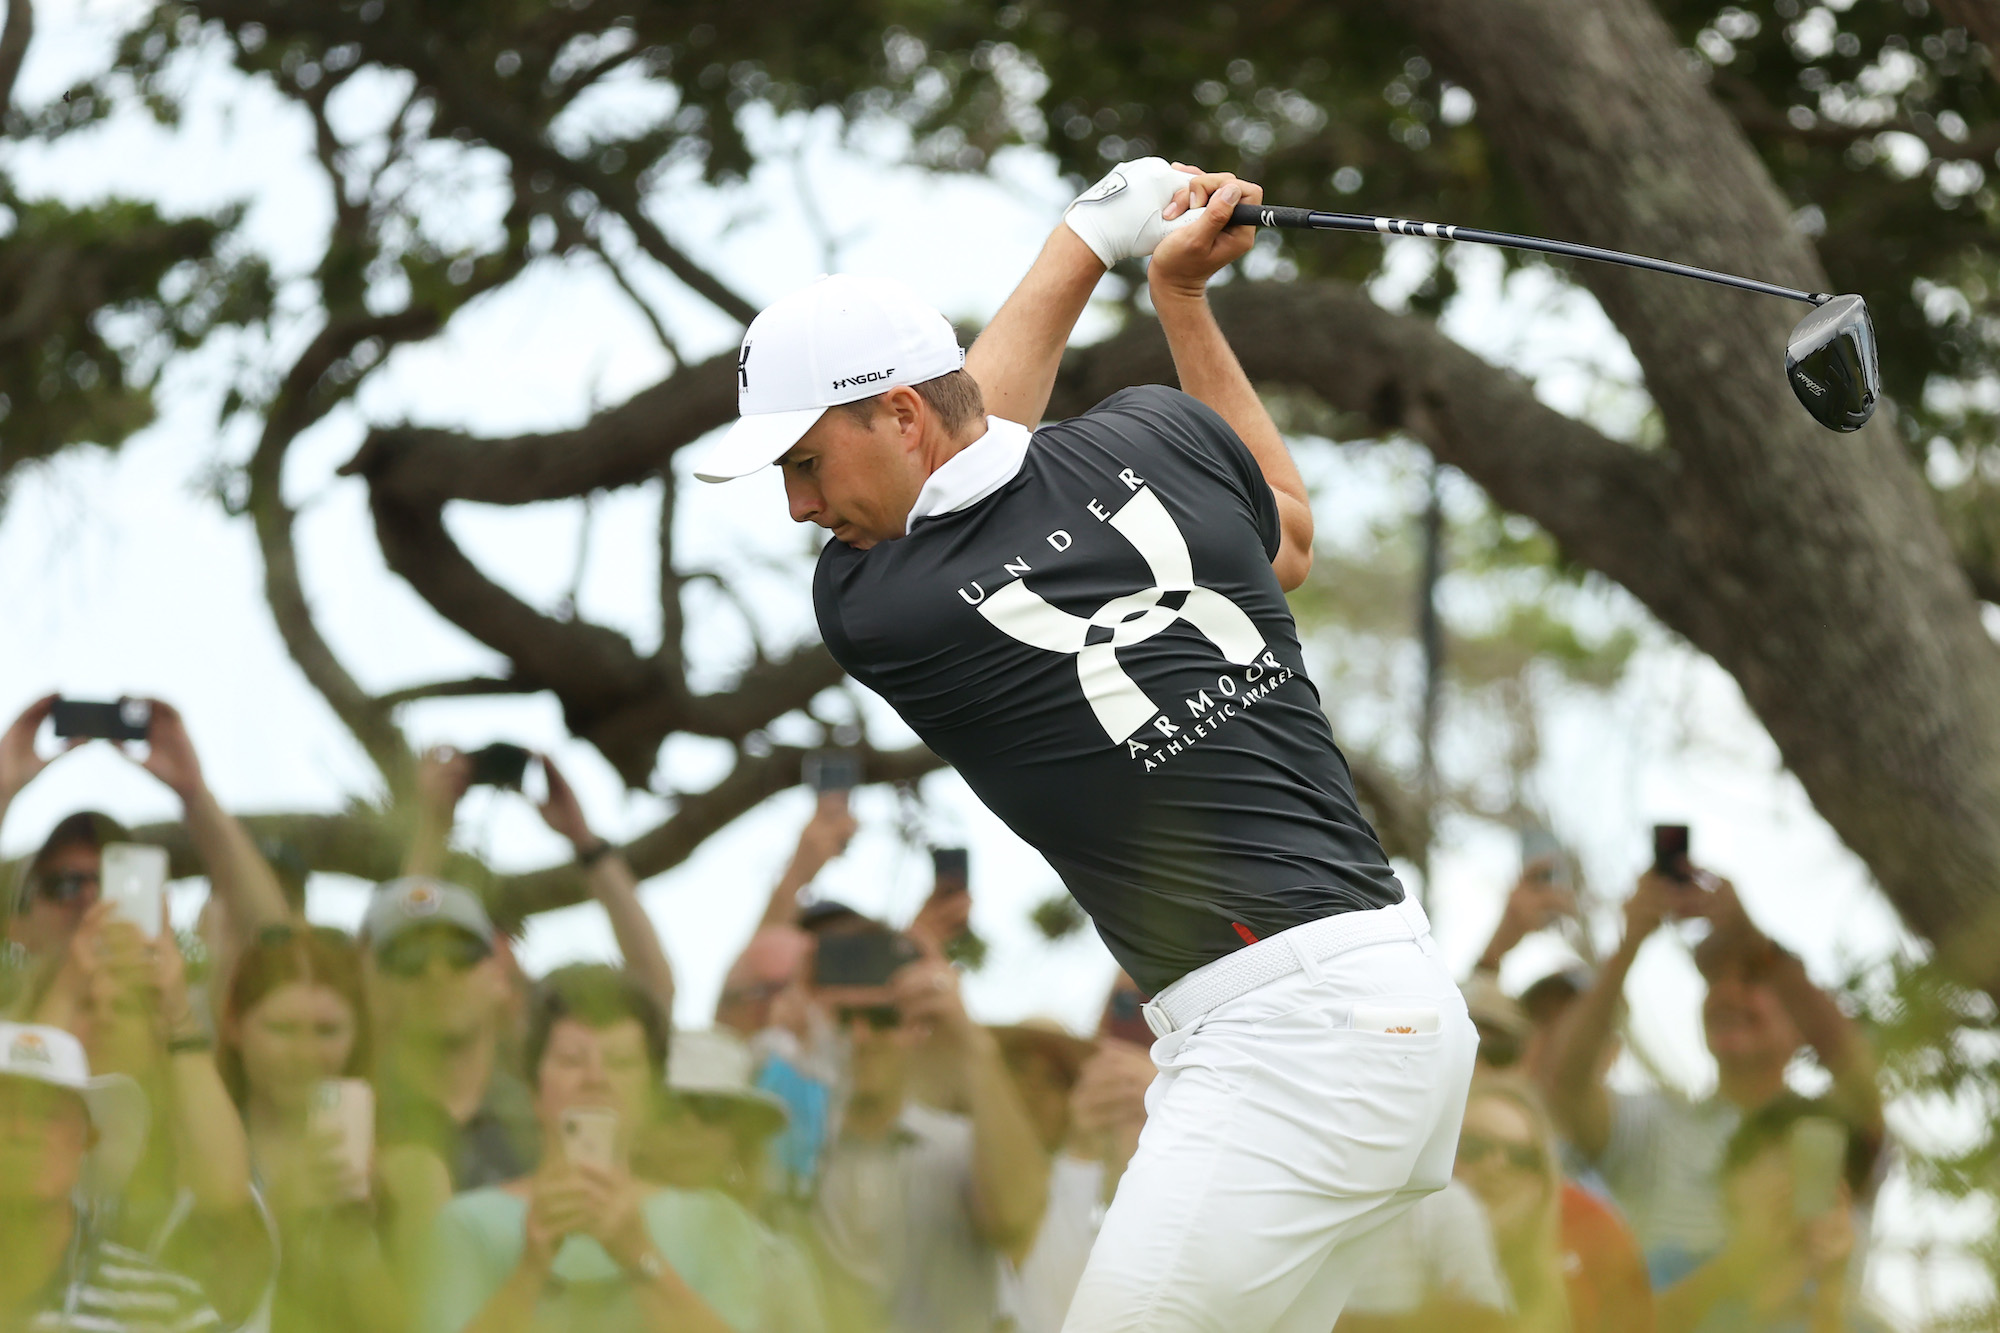 2021 PGA Championship: Preview Day 3 - At Kiawah on Wednesday